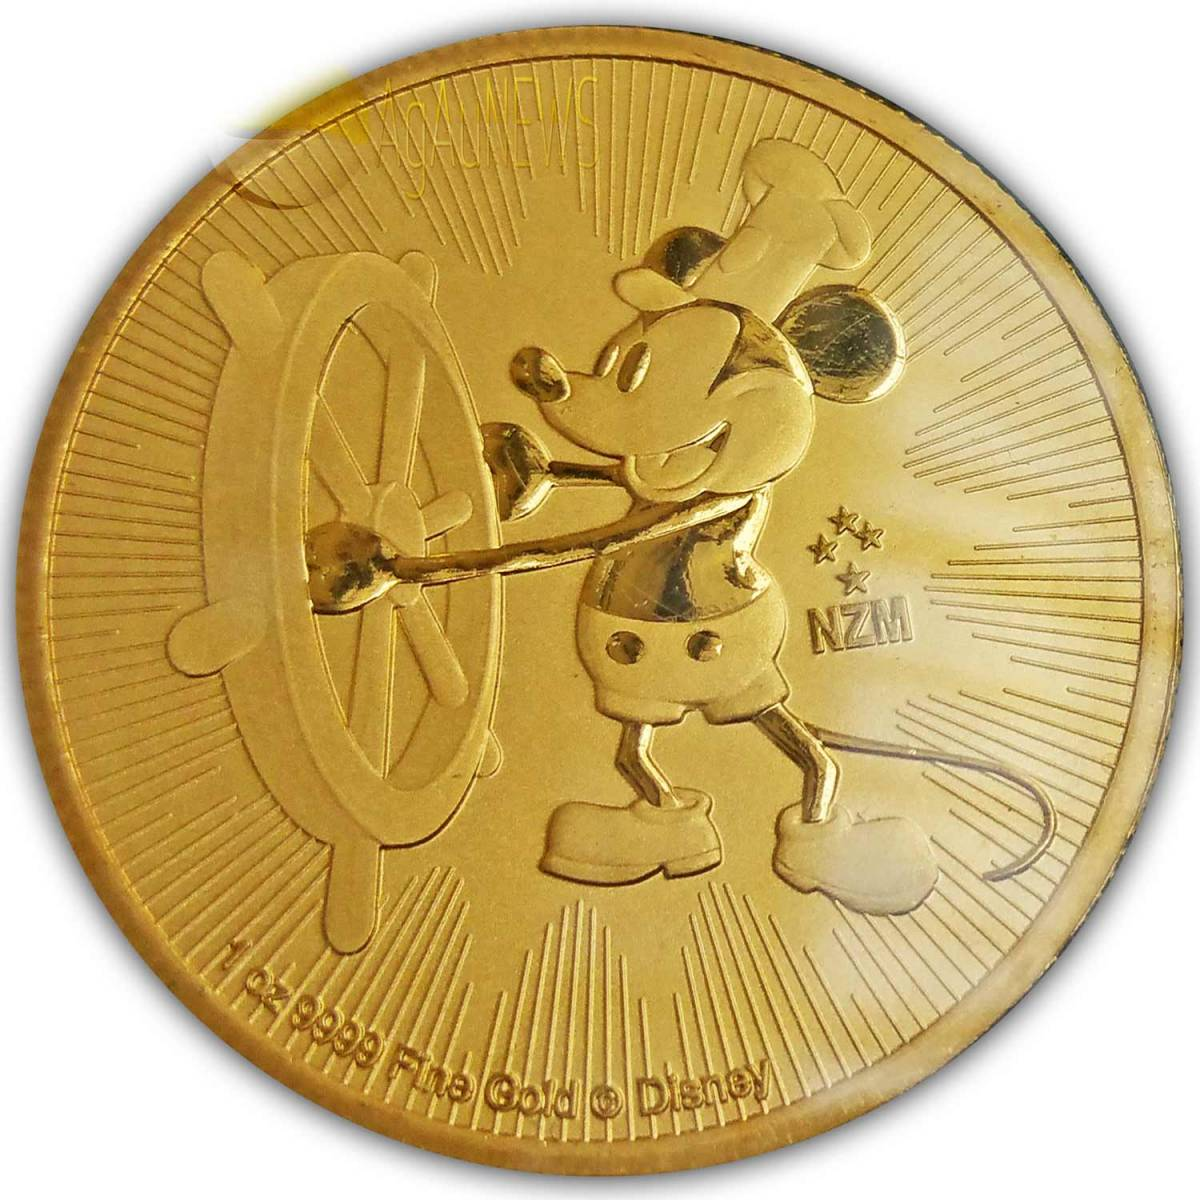 2017 steamboat willie coin